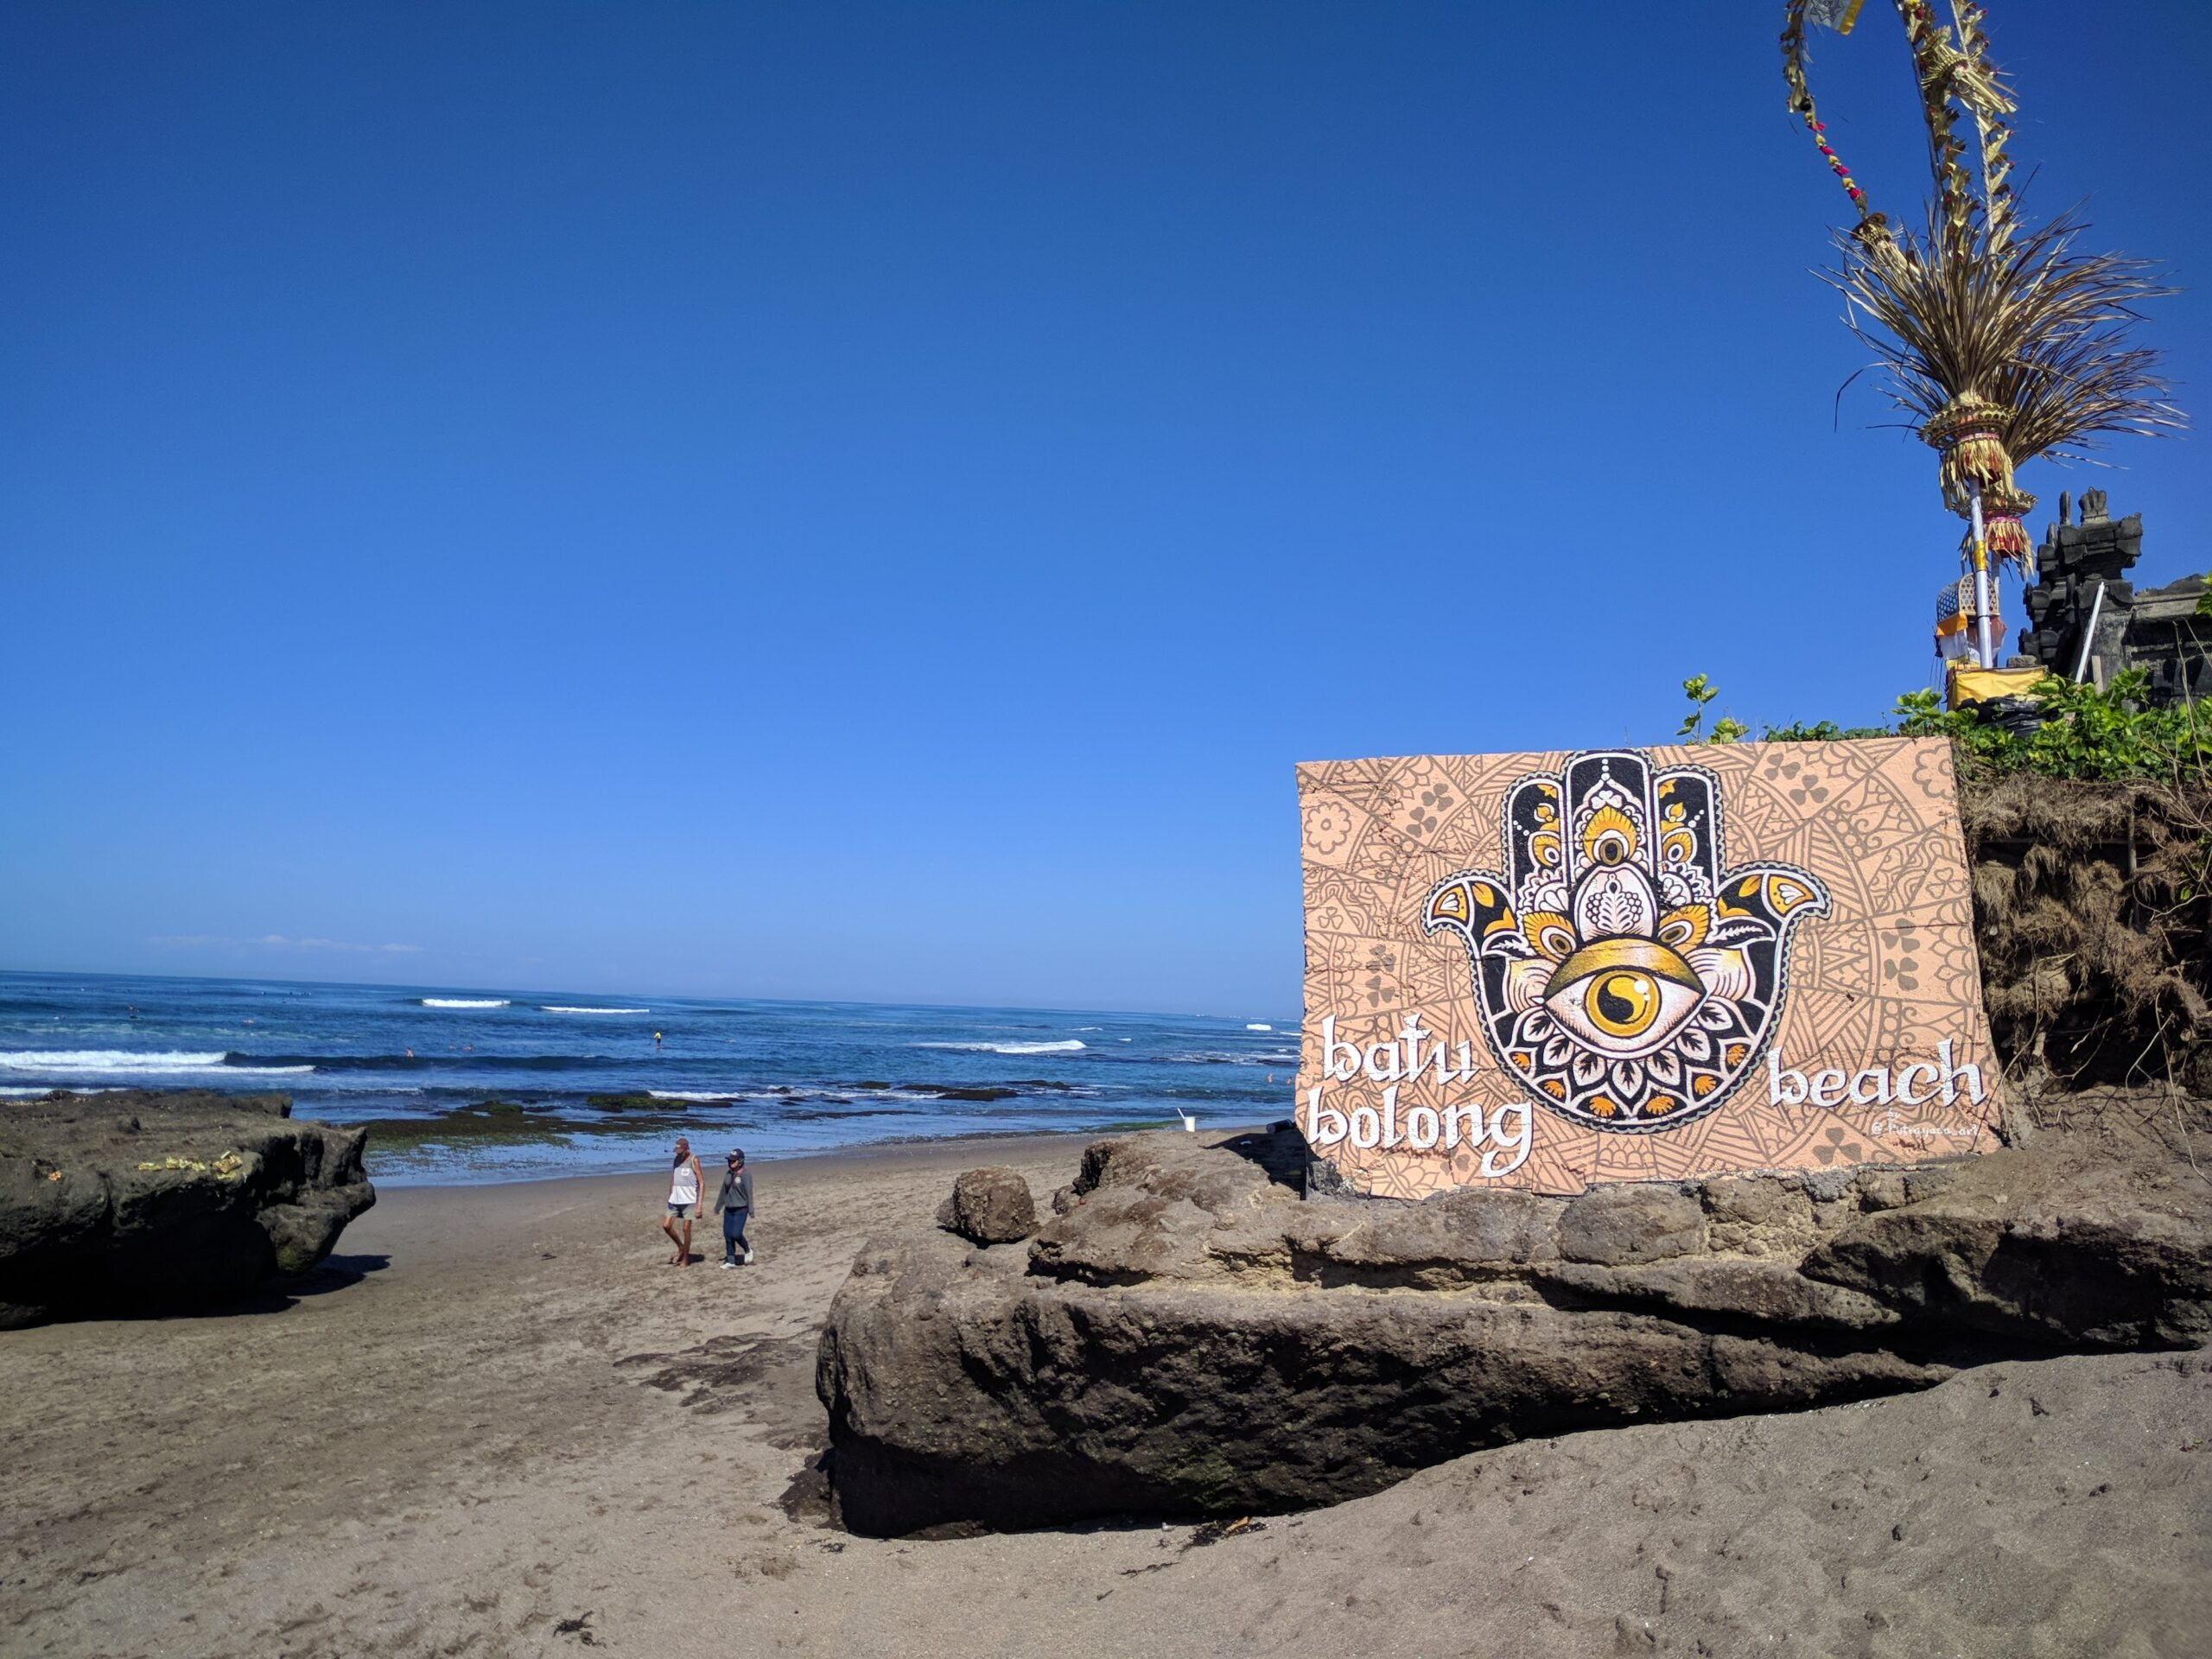 Pantai Batu Bolong in Canggu: once a quiter surfing beach, it is now home to numerous beach bars and soon a large Intercontinental Hotel will be opened here